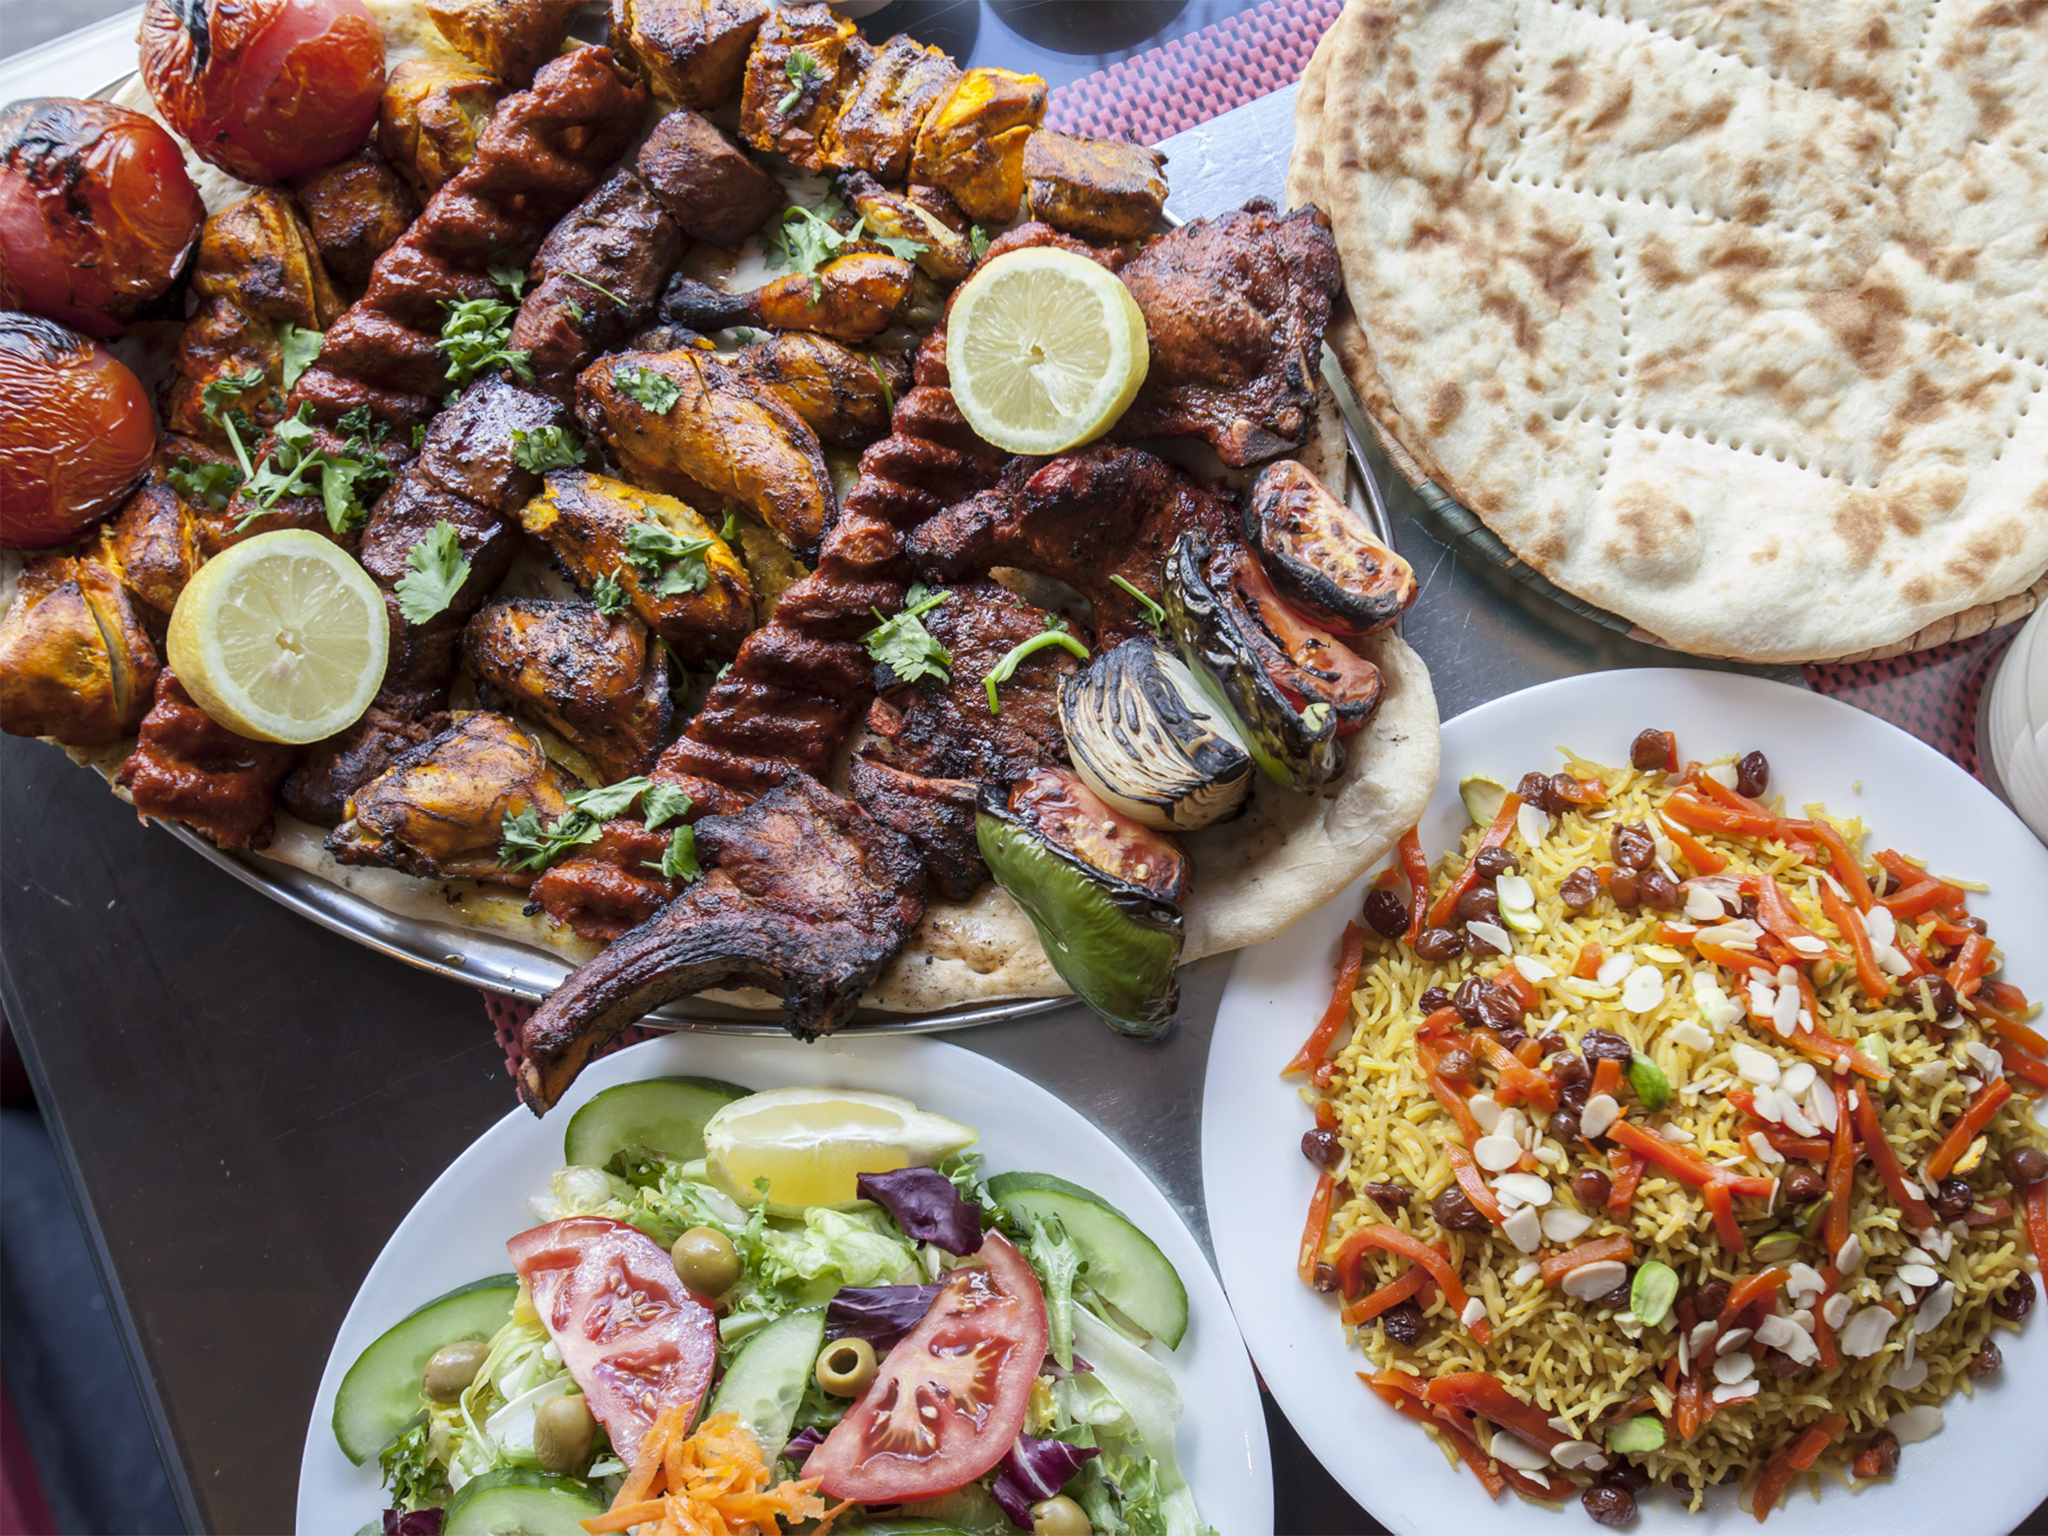 Ariana ii restaurants in kilburn london for Afghan cuisine menu